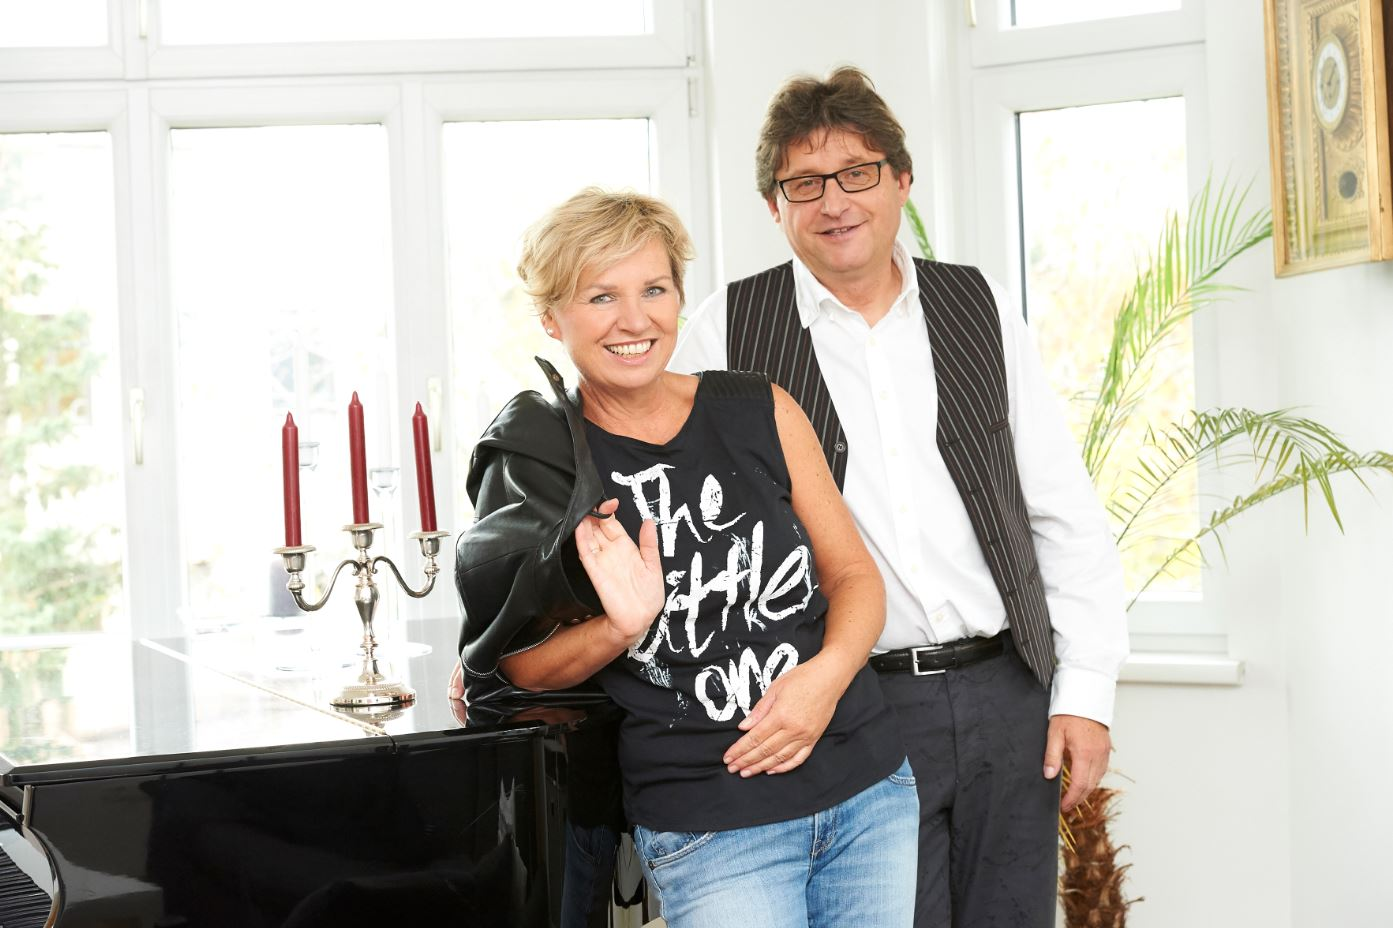 Christine und Helmut Posch - photo by Lore Prendinger